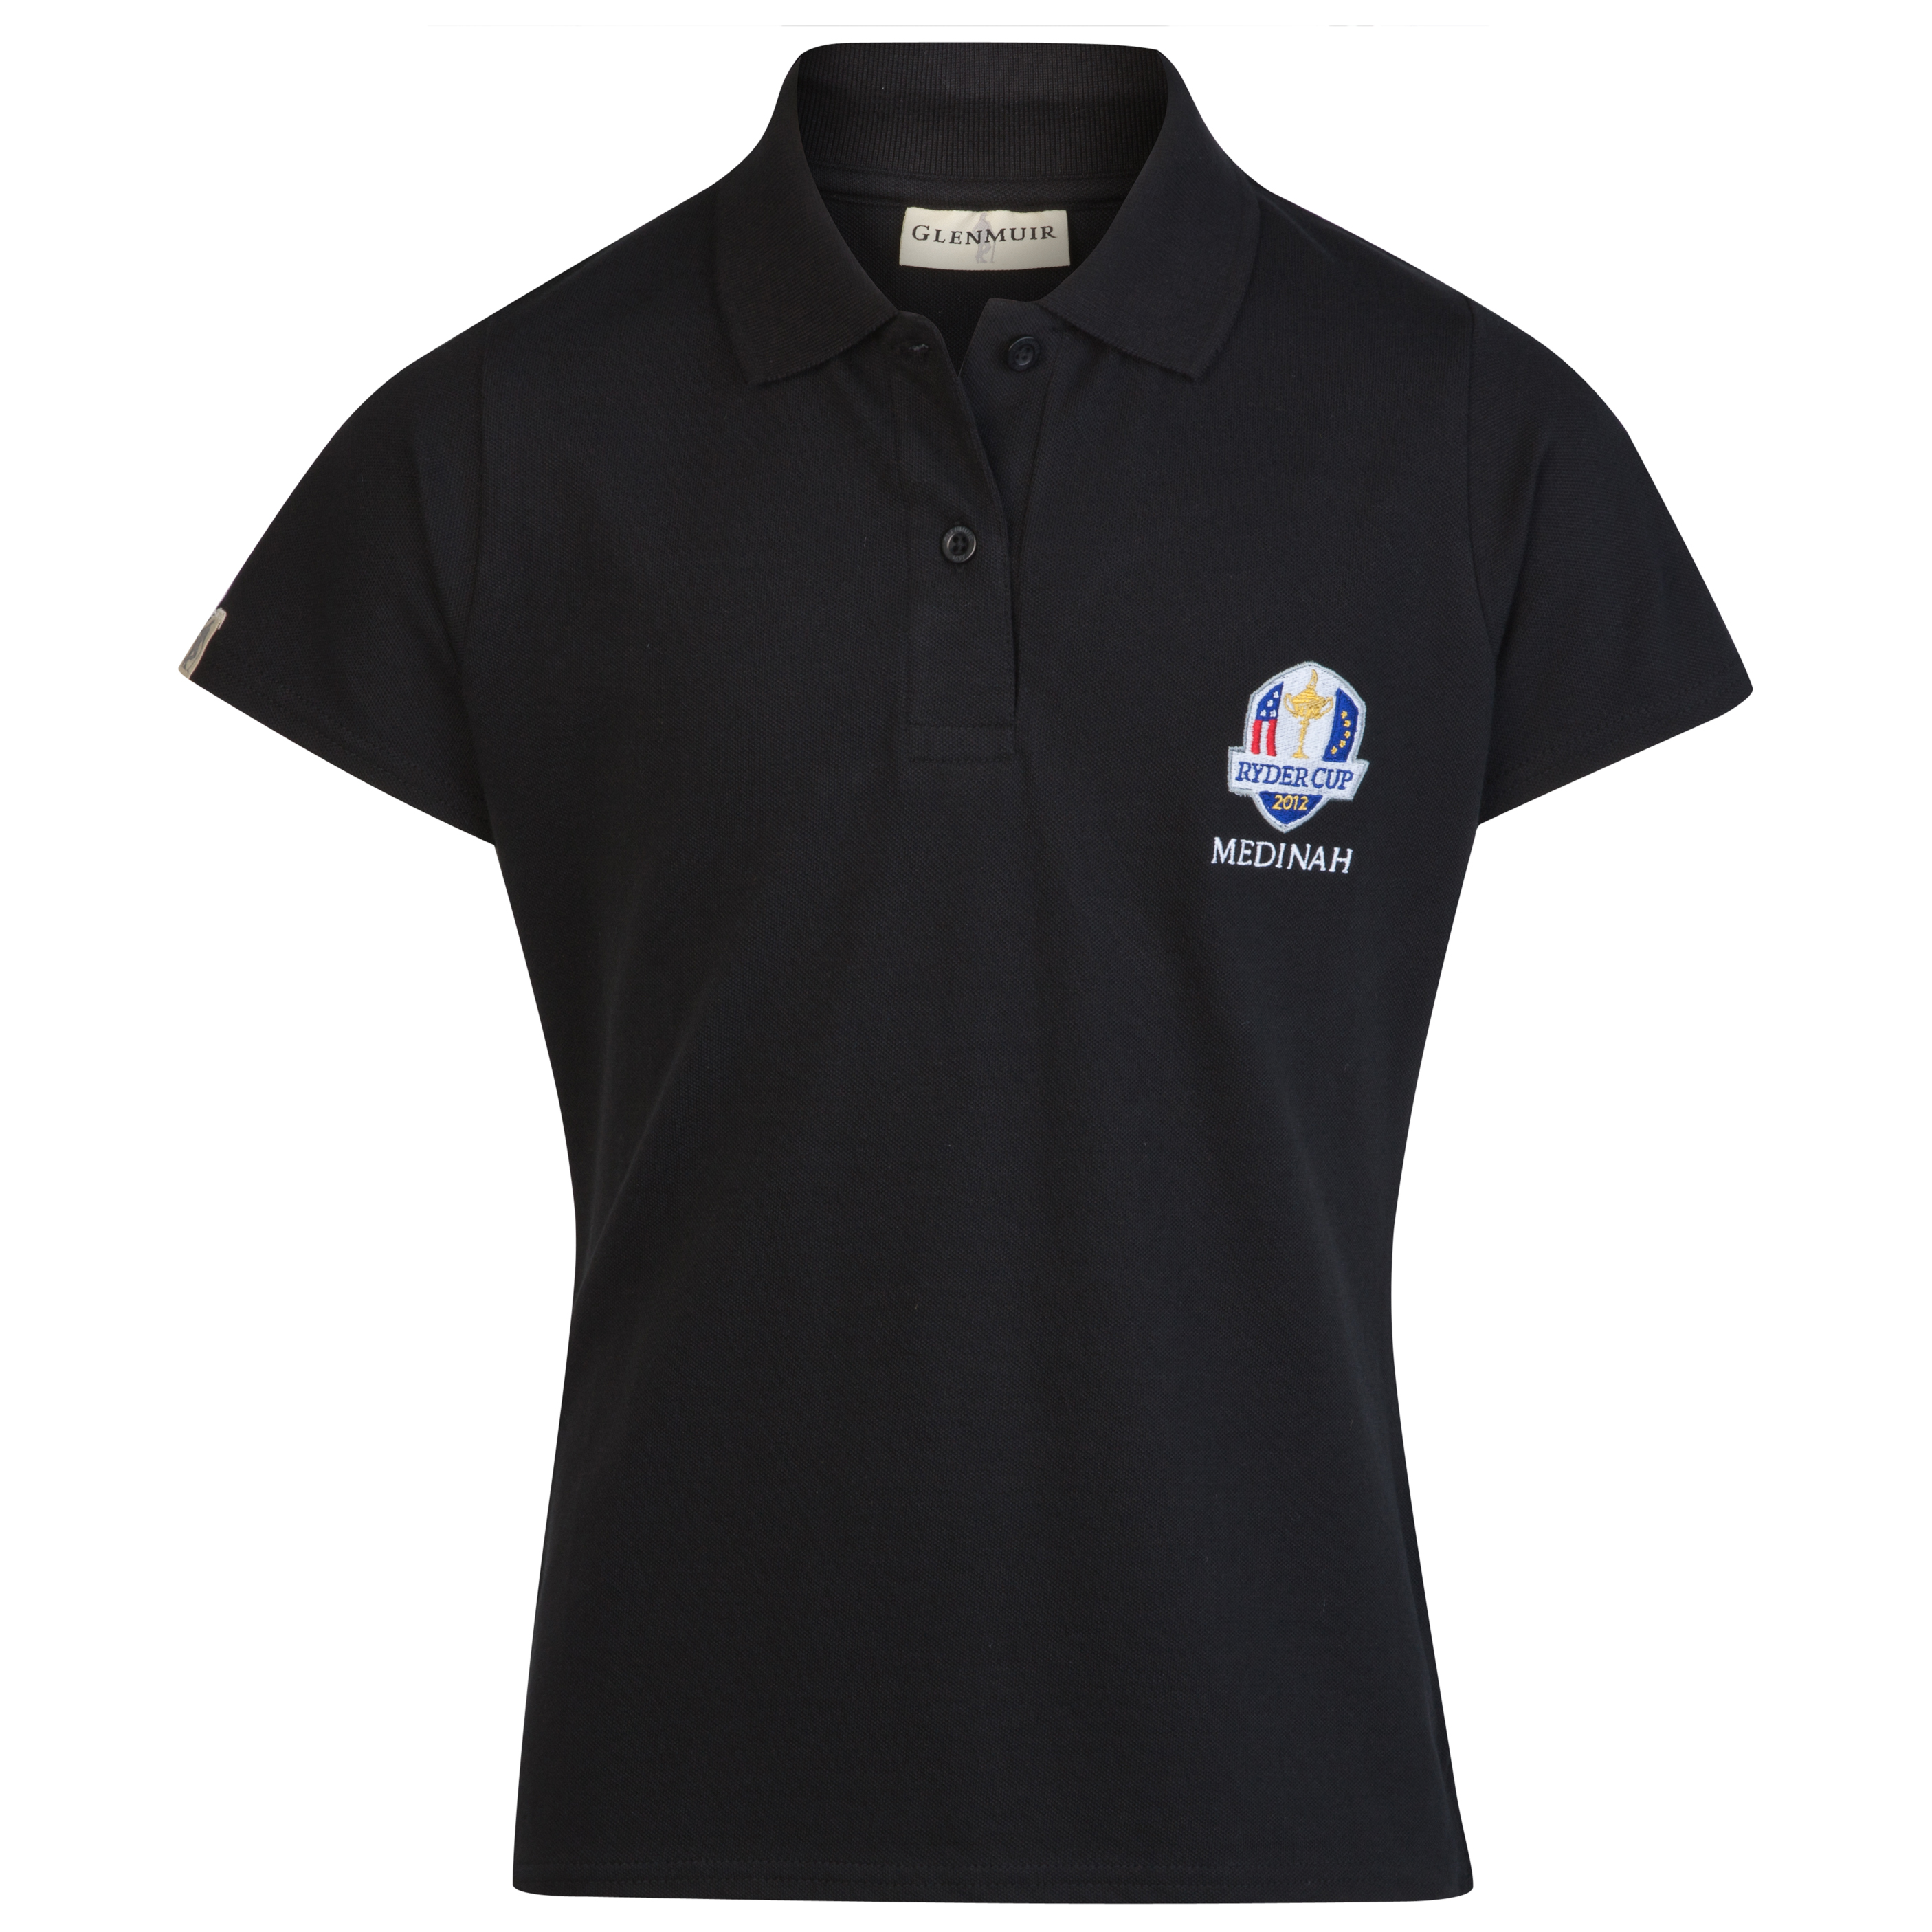 The 2012 Ryder Cup Glenmuir Zara Polo - Black - Girls